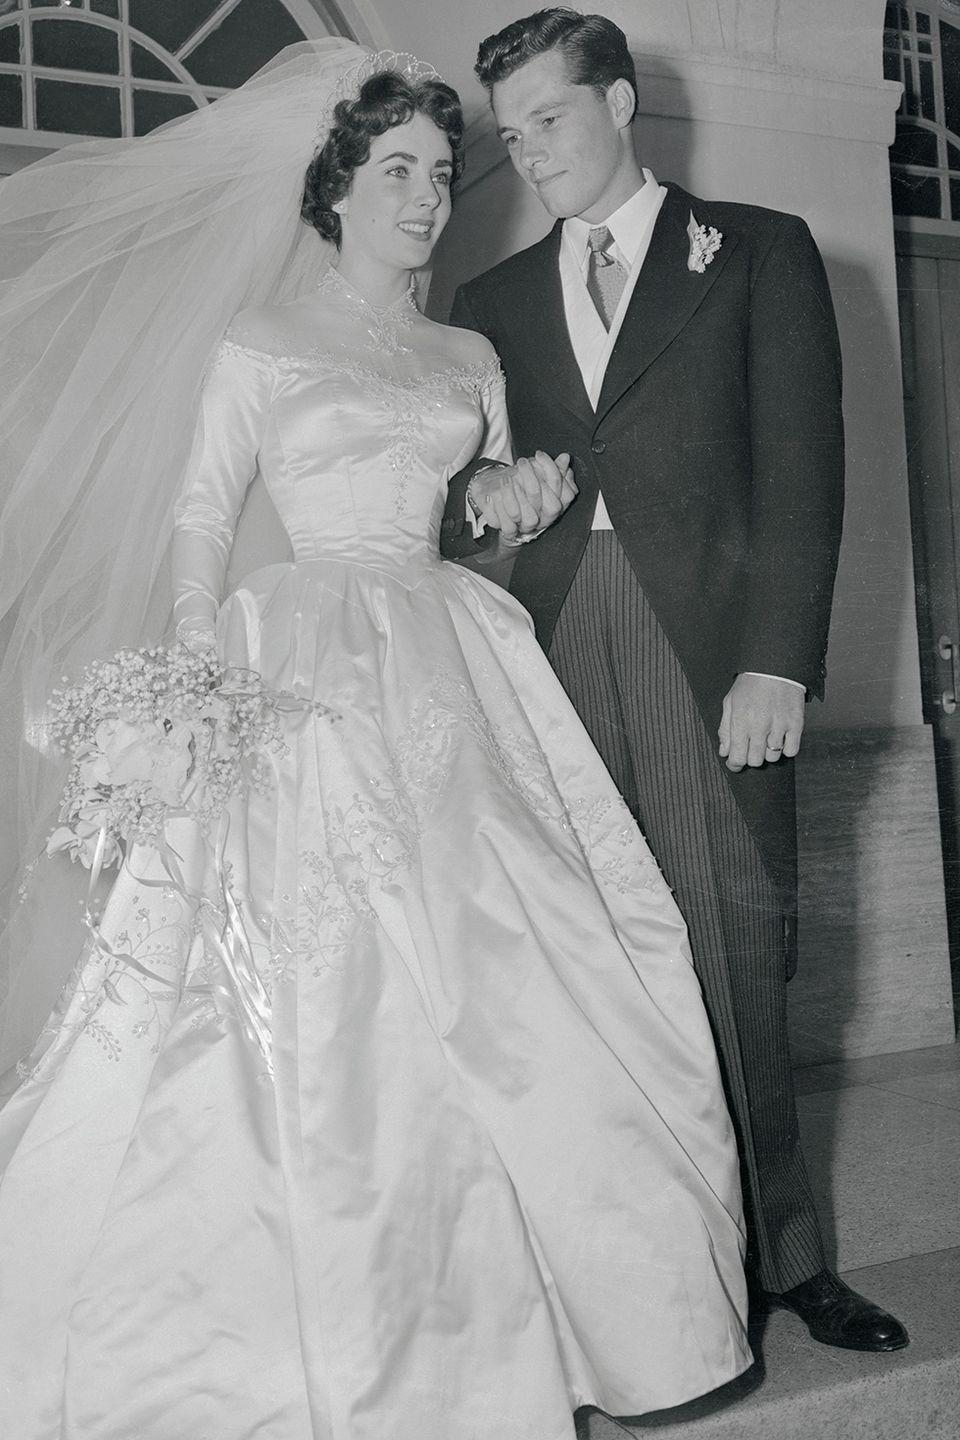 """<p>Liz was married eight times to seven husbands — but her first time down the aisle was with Conrad """"Nicky"""" Hilton when she was 18. She wore a satin long-sleeved gown with a silk gauze off-the-shoulder illusion neckline that was designed by MGM costume designer Helen Rose.</p><p><strong>RELATED</strong>: <a href=""""https://www.goodhousekeeping.com/life/entertainment/g2632/rare-photos-elizabeth-taylor/"""" rel=""""nofollow noopener"""" target=""""_blank"""" data-ylk=""""slk:60 Rare Photos of Elizabeth Taylor Through the Years"""" class=""""link rapid-noclick-resp"""">60 Rare Photos of Elizabeth Taylor Through the Years</a></p>"""